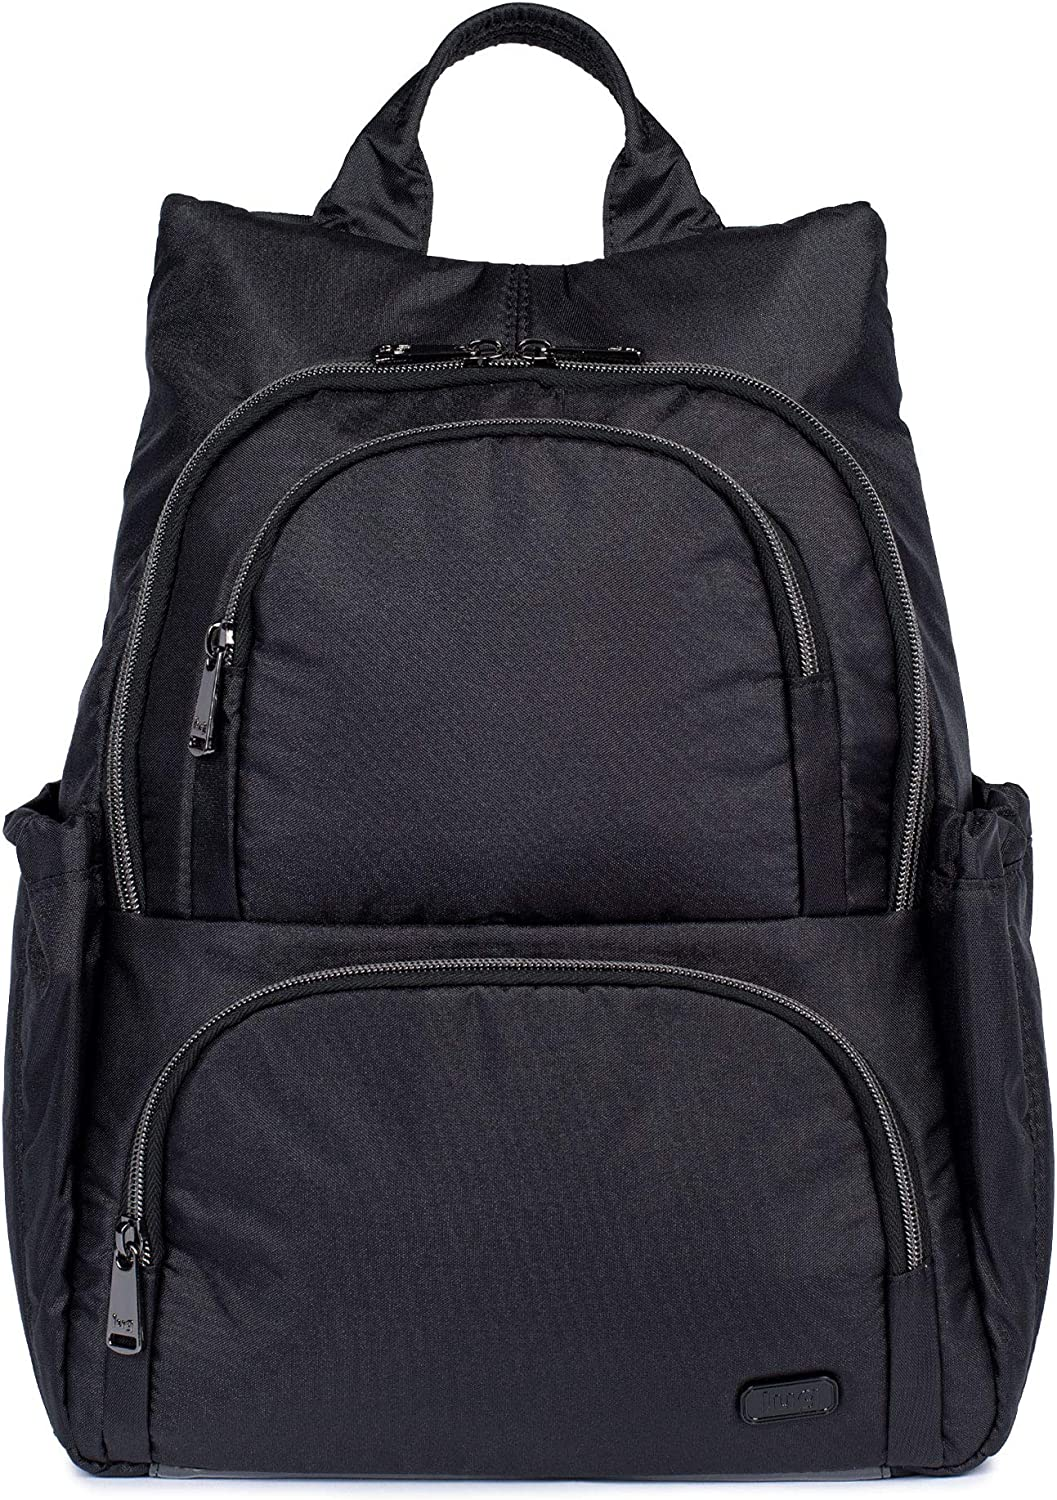 HATCHBACK BACKPACK 3, Hiking Backpack